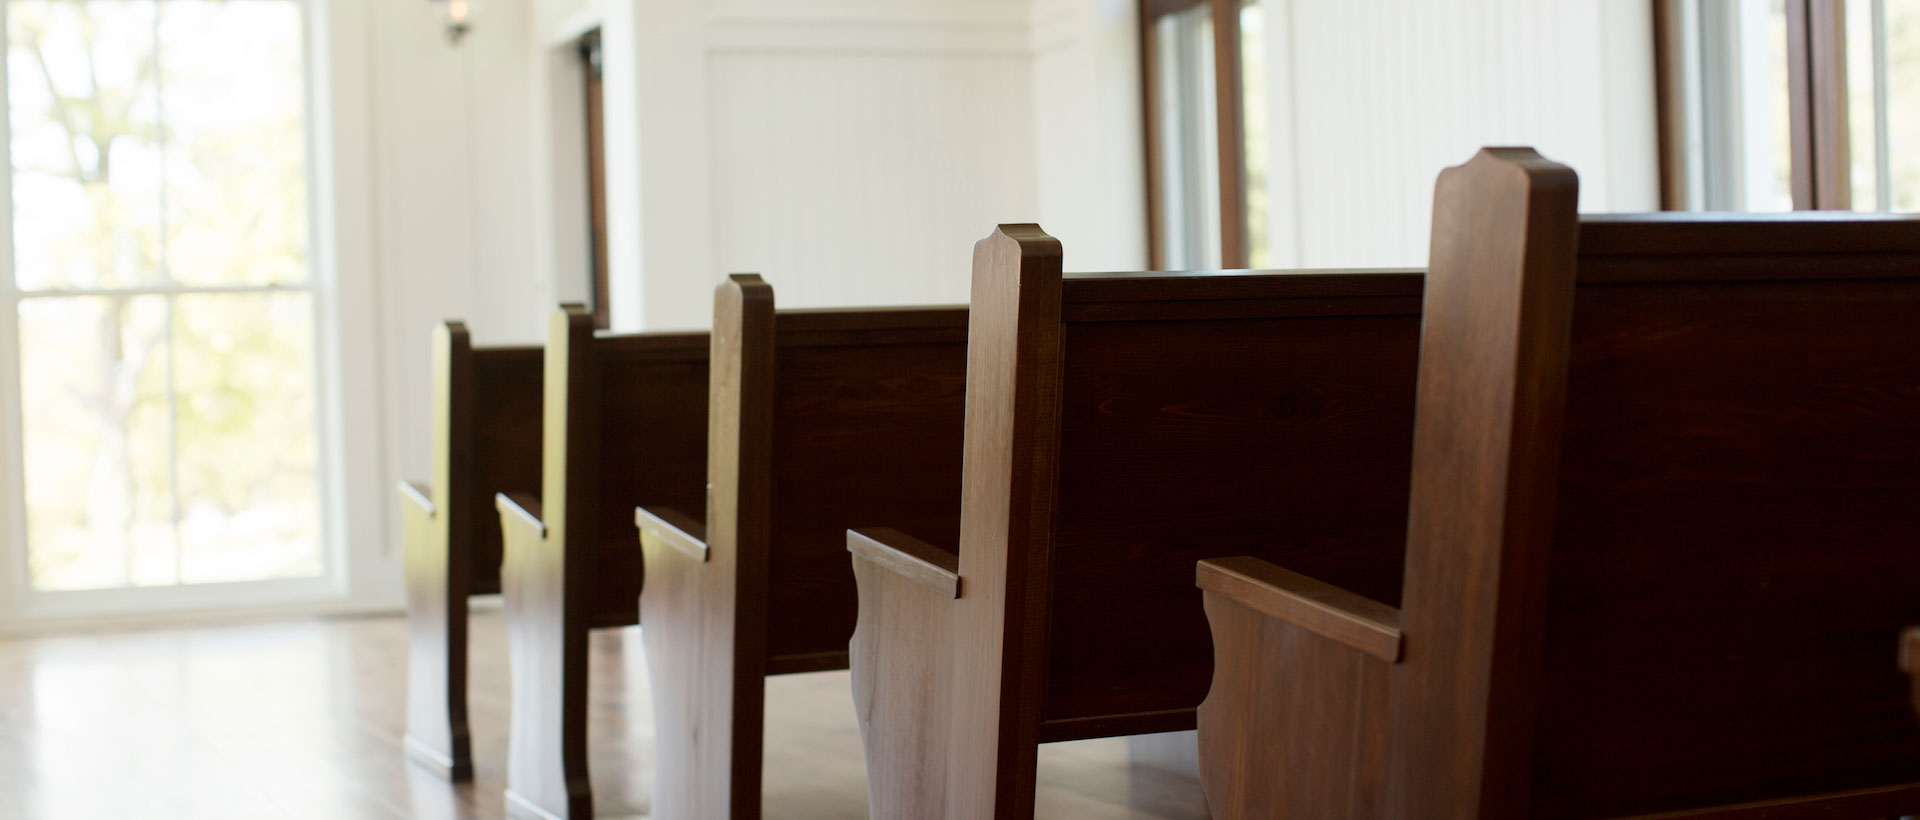 Why Christians Don't Go to Church (and Why They Must)